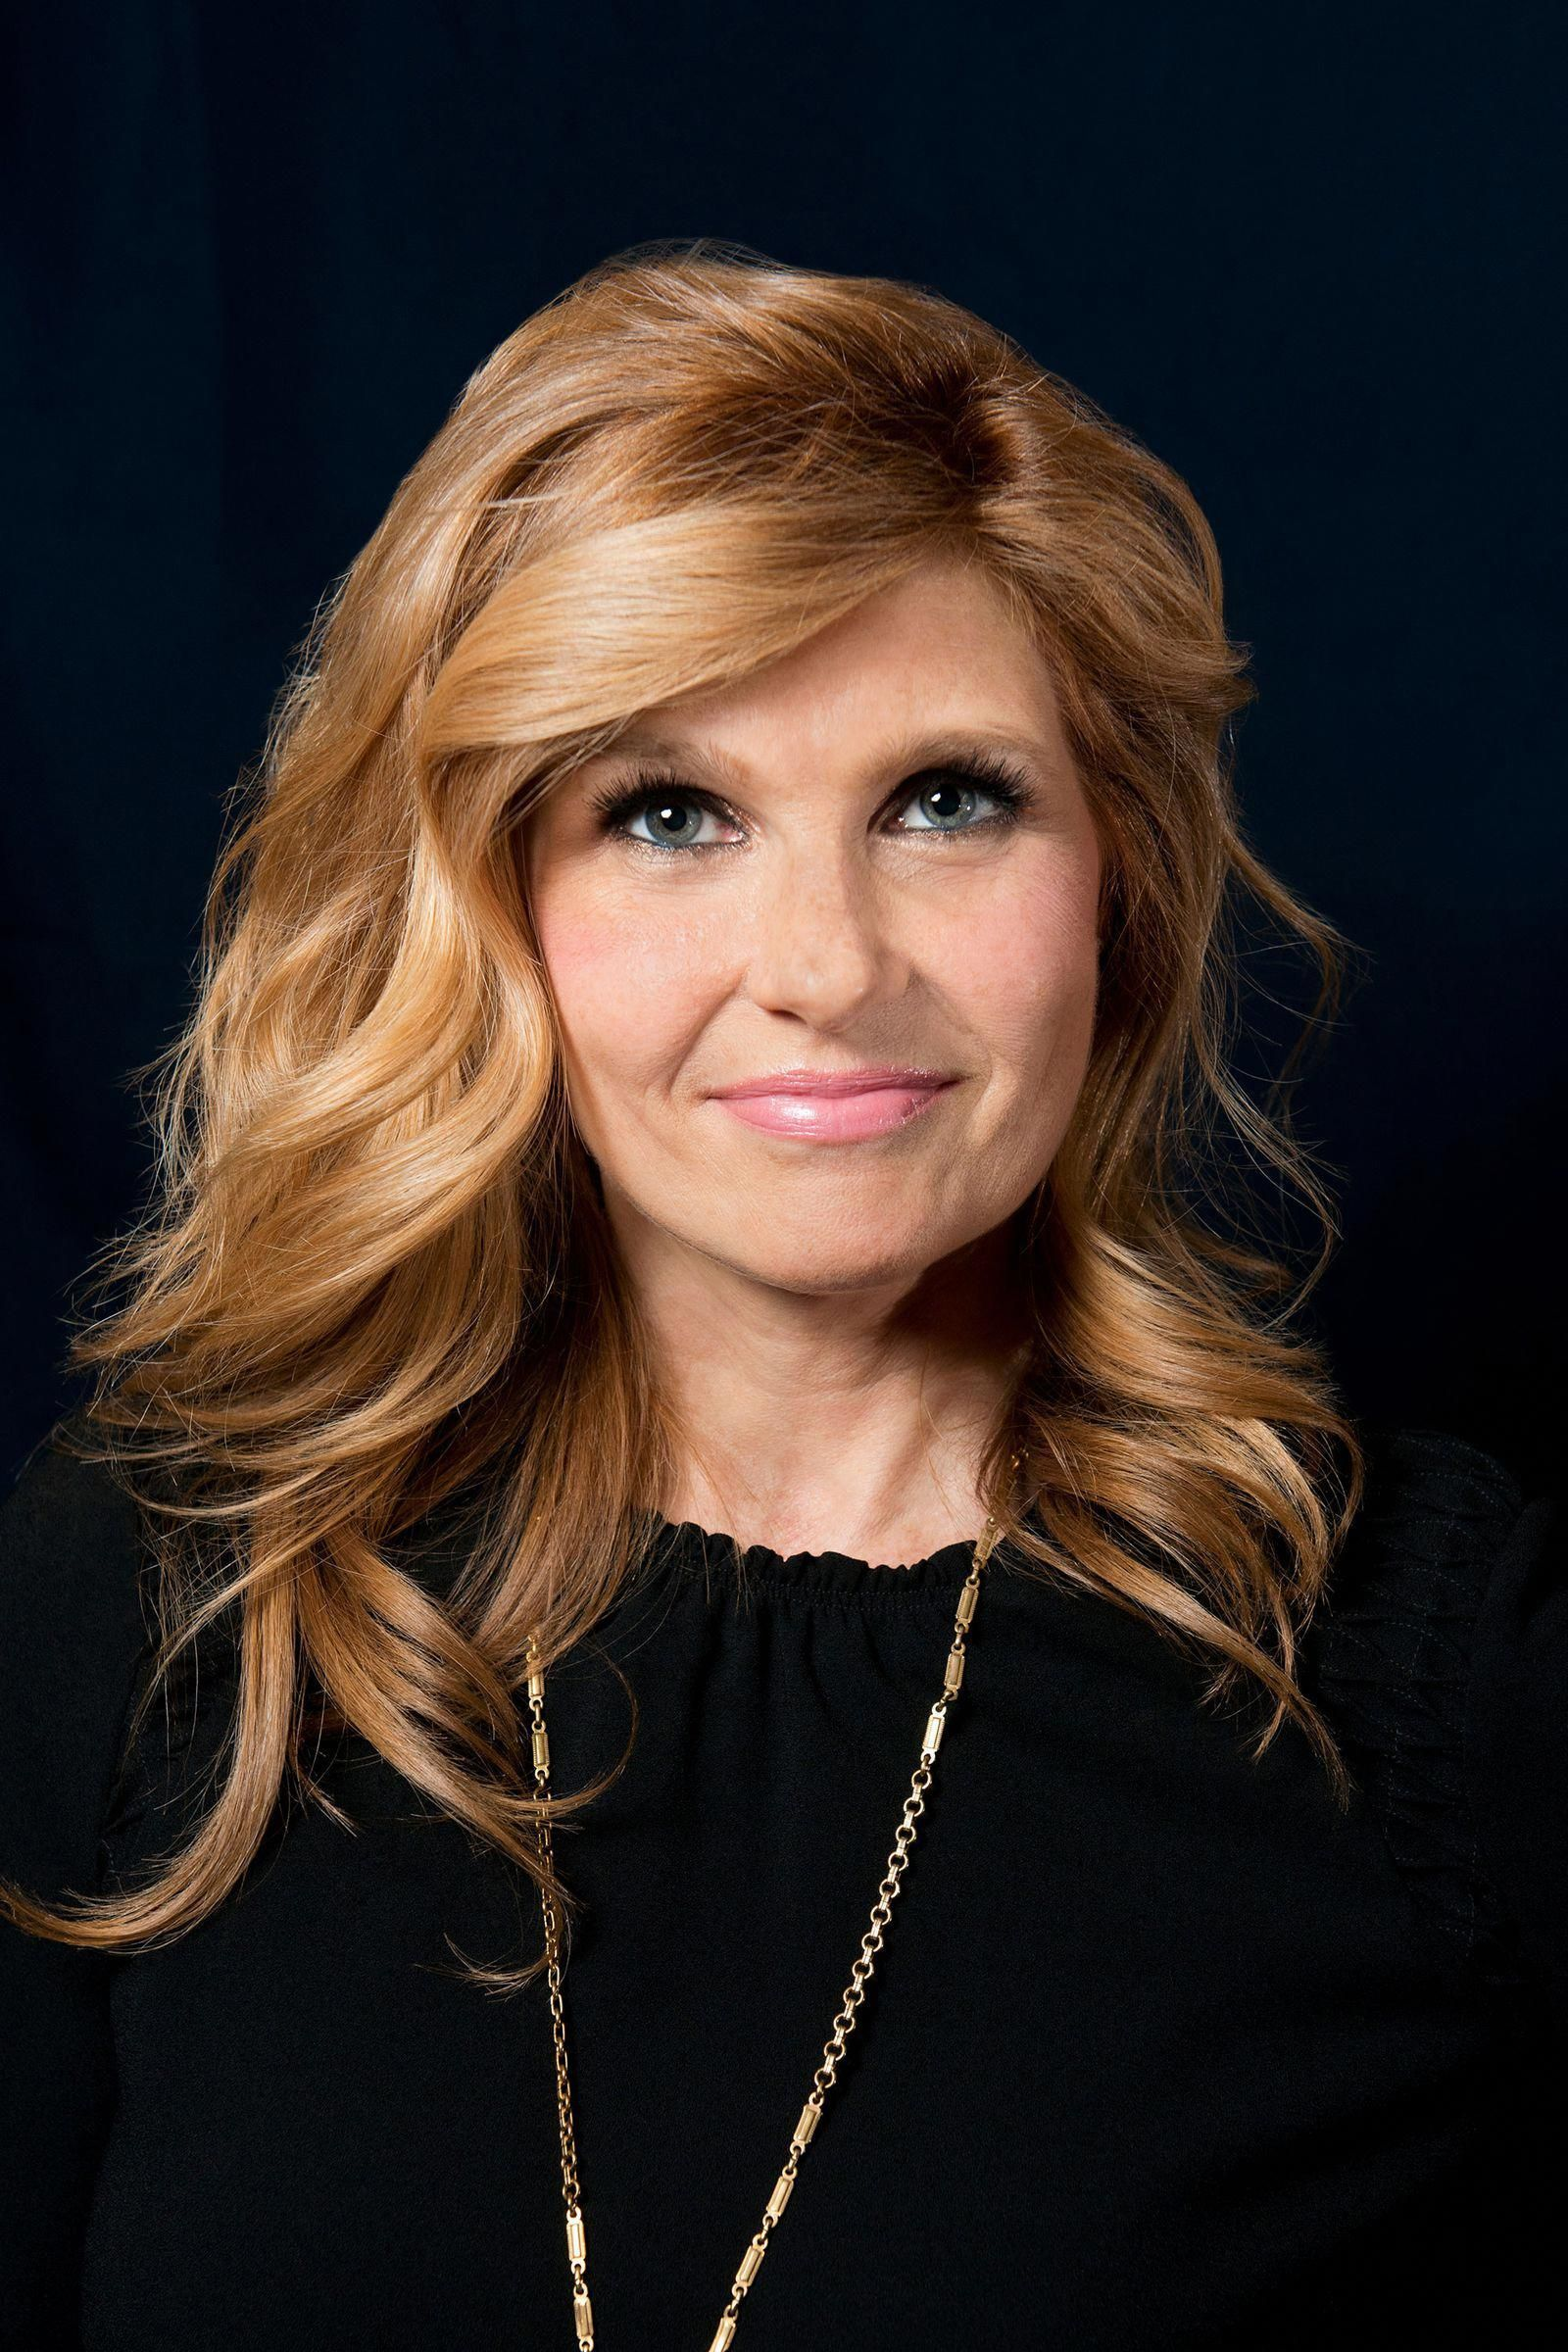 Connie Britton expression 50 year old hairstyles, Old